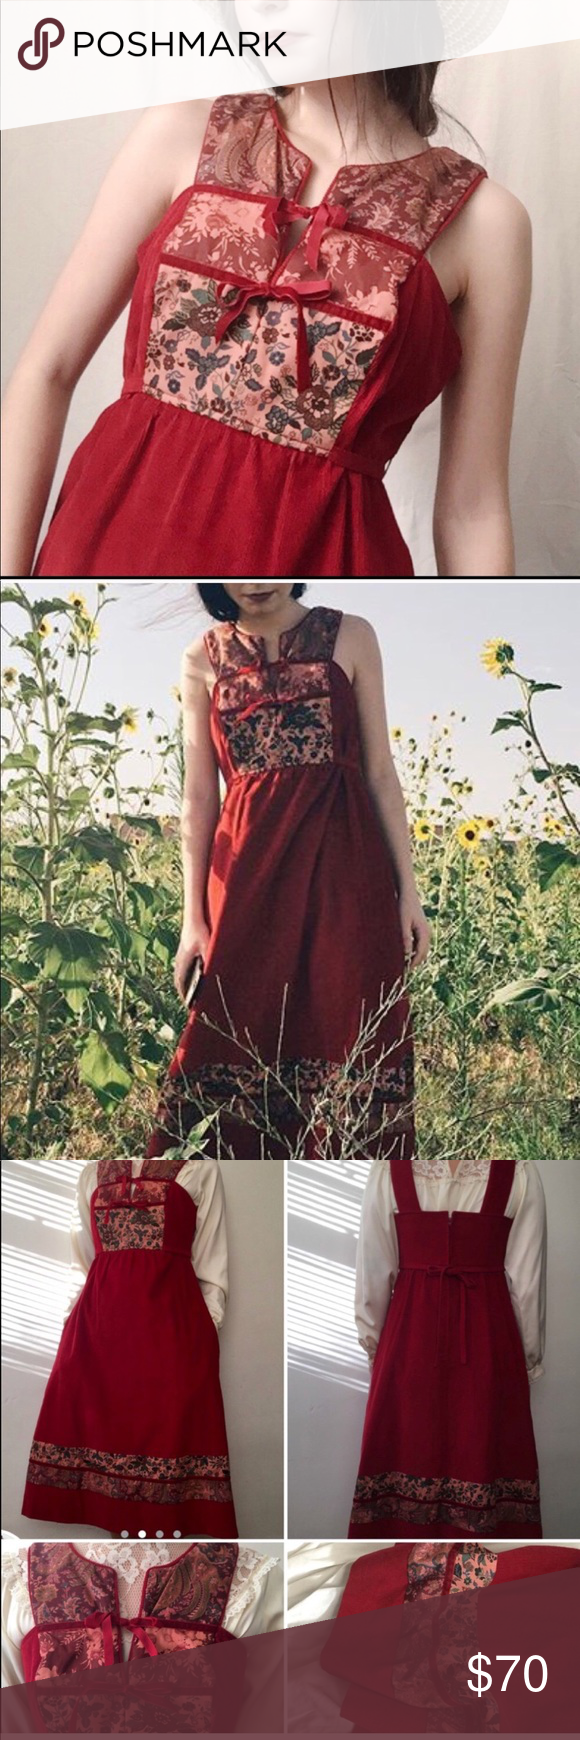 586c61dbe00 Vintage Corduroy Dress Absolutely stunning and breathtaking vintage dress  in a deep red corduroy material!